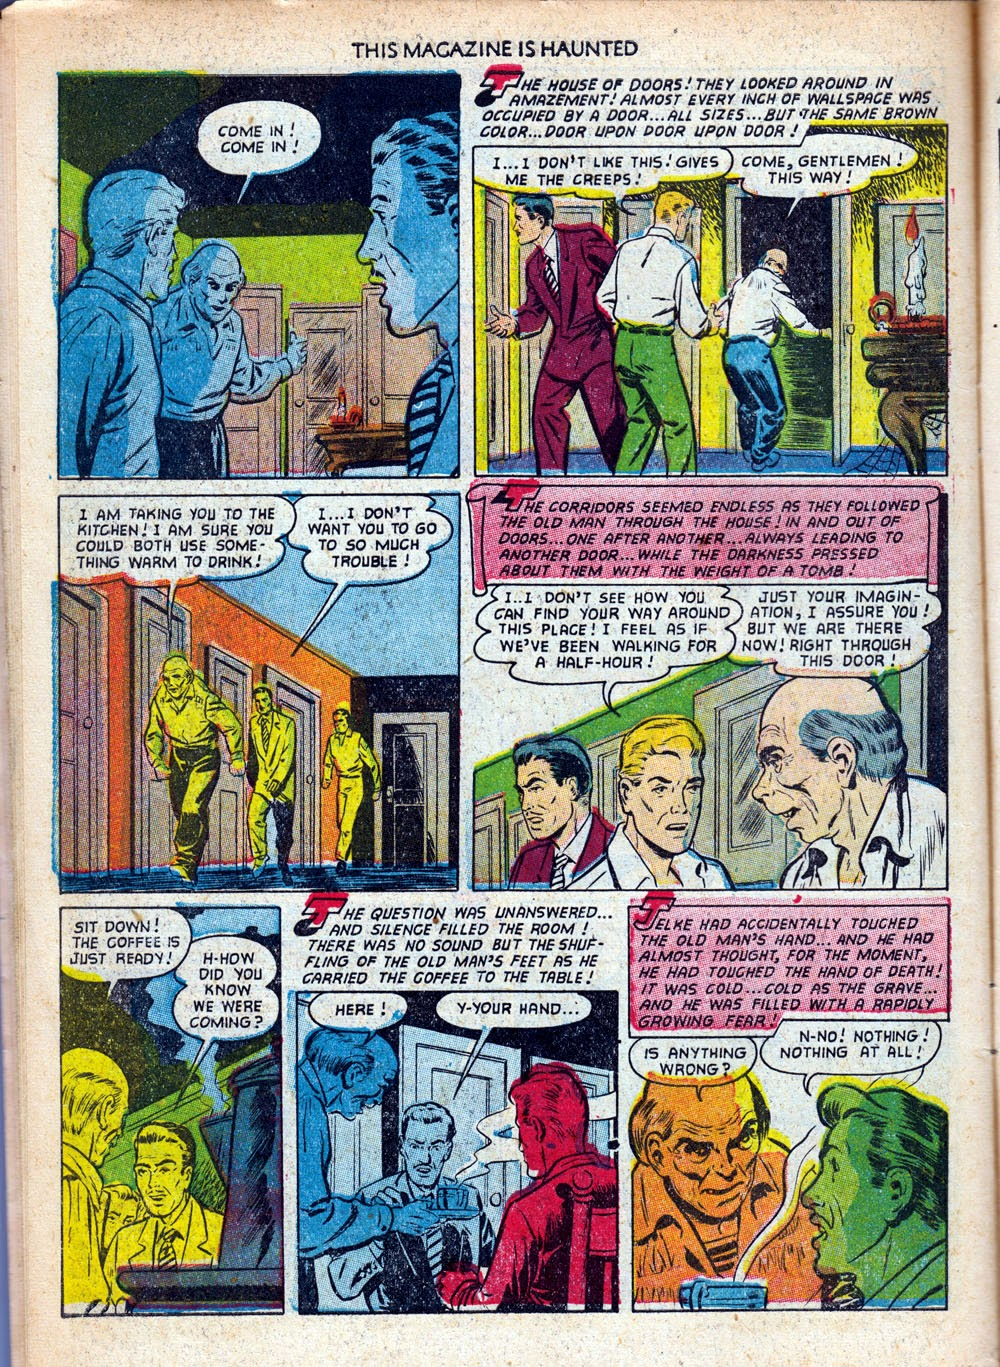 Read online This Magazine Is Haunted comic -  Issue #9 - 30